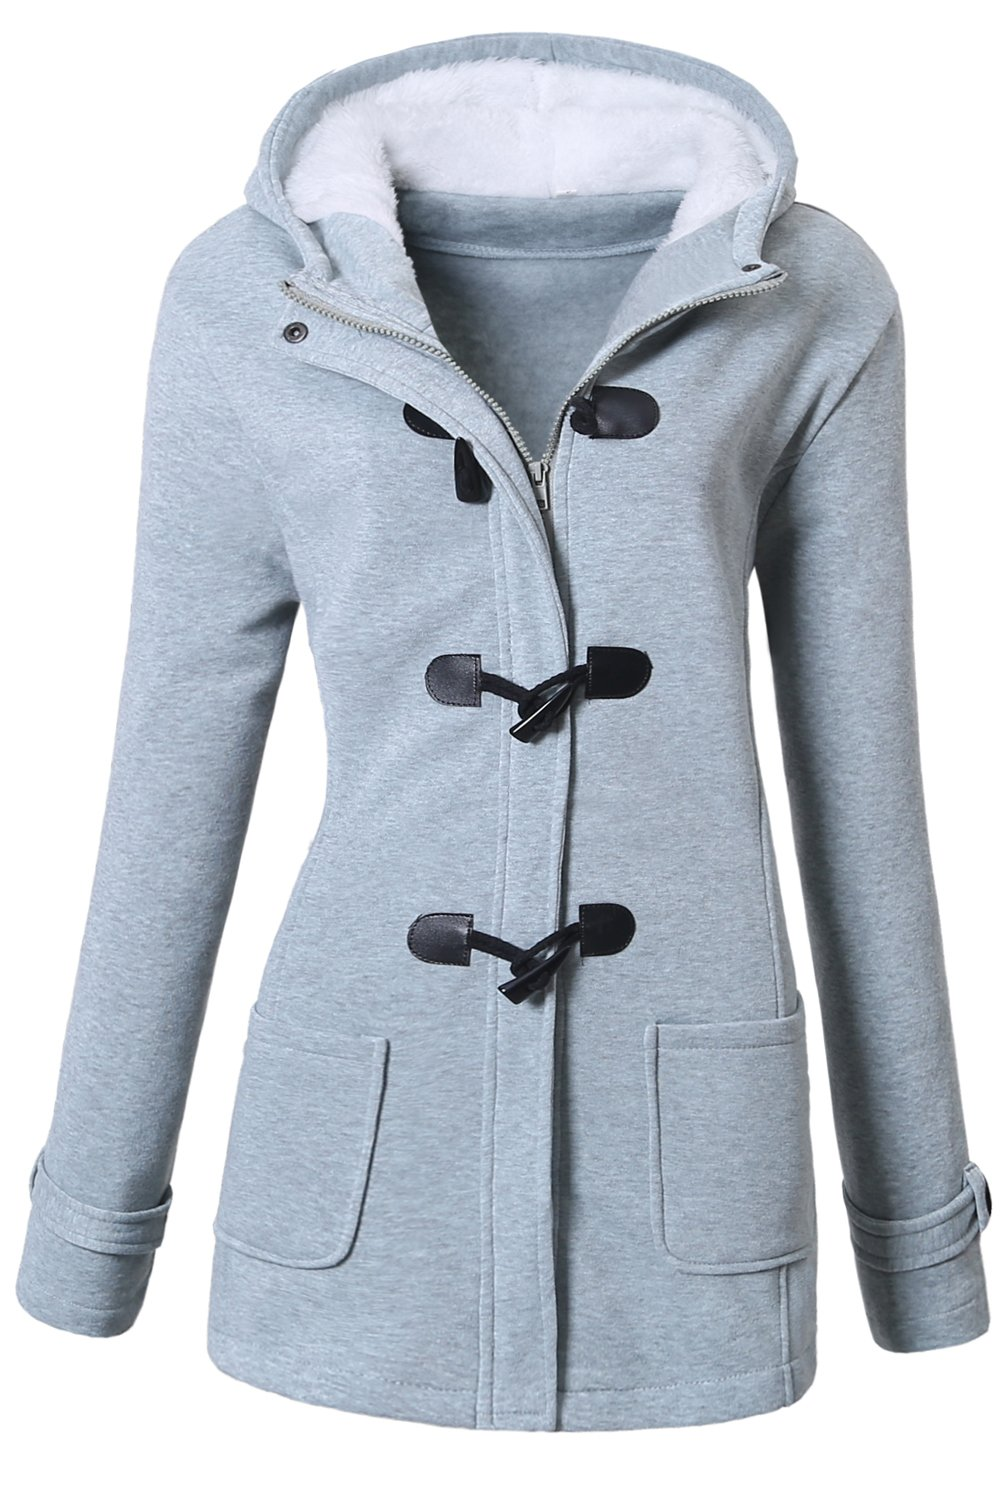 VOGRYE Womens Winter Fashion Outdoor Warm Wool Blended Classic Pea Coat Jacket Grey Large